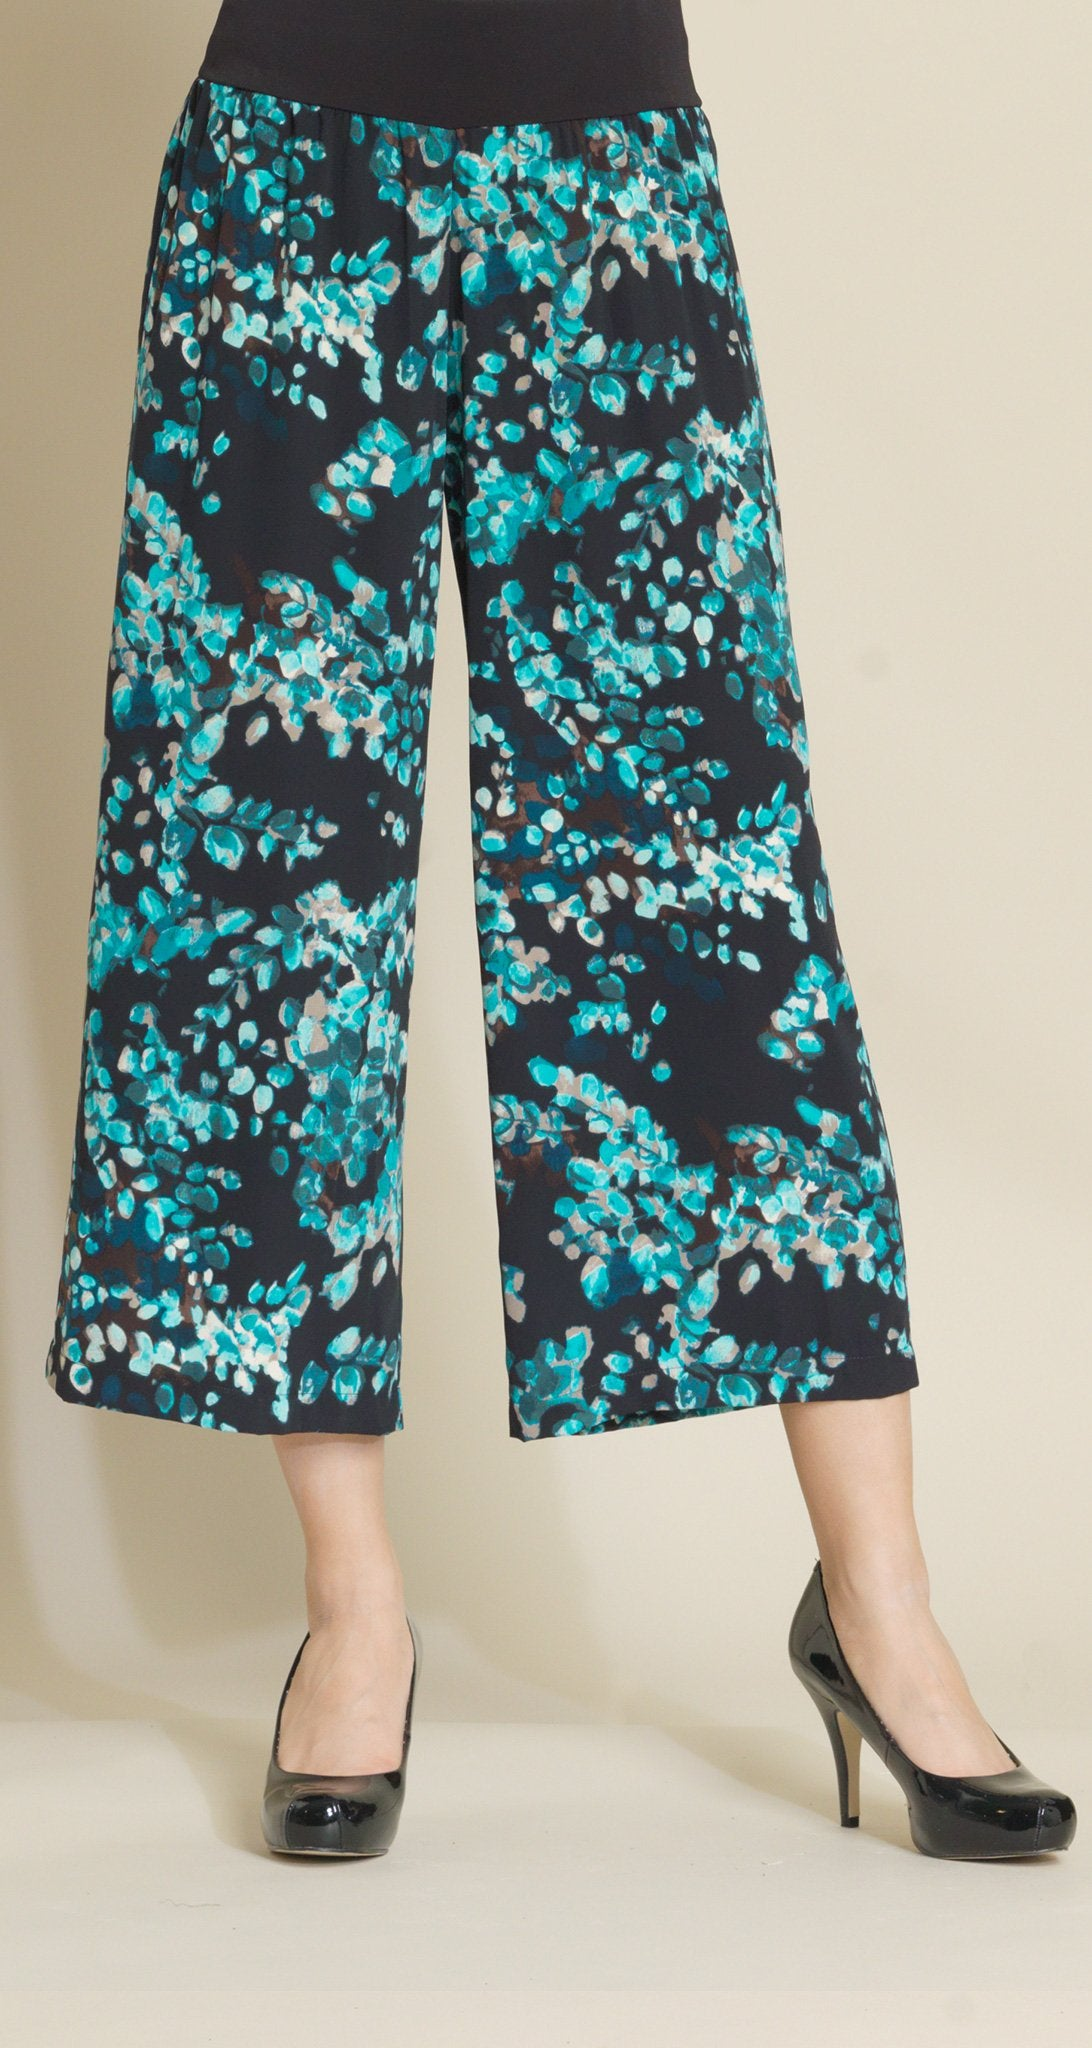 Willow Print Pull On Gaucho - Turquoise Multi - Final Sale! - Clara Sunwoo